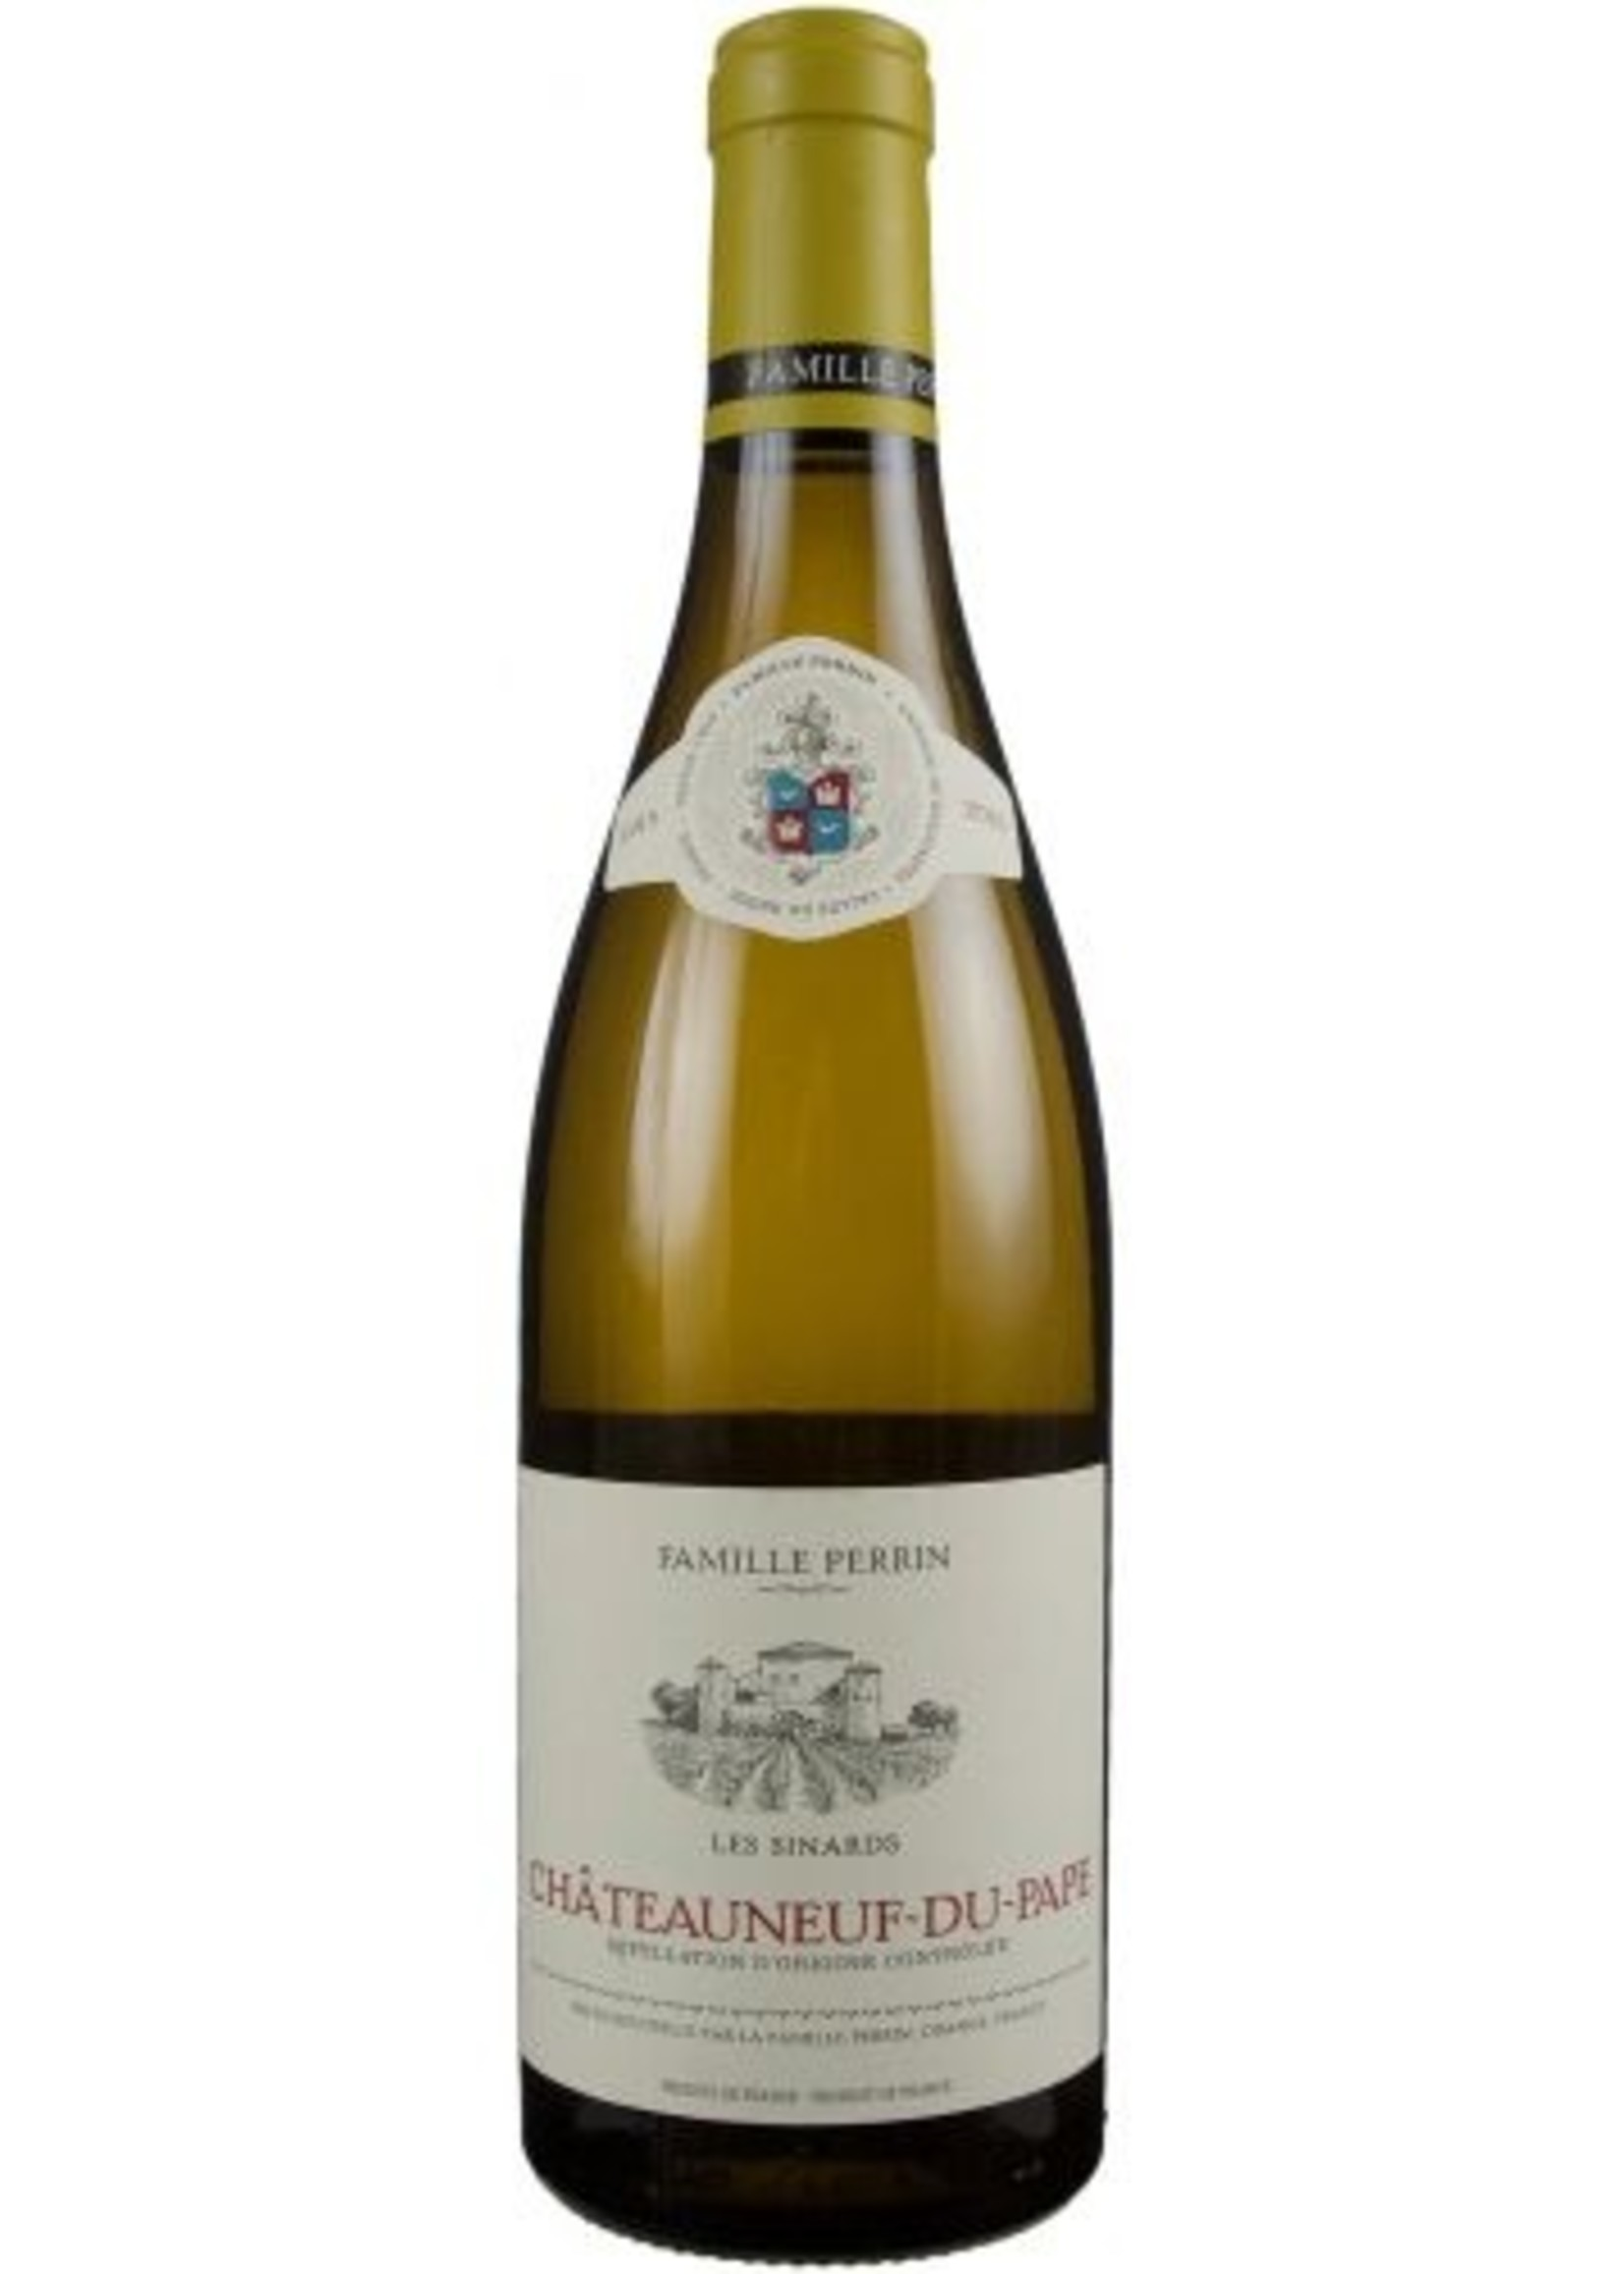 Perrin Chateauneuf-du-Pape Les Sinards